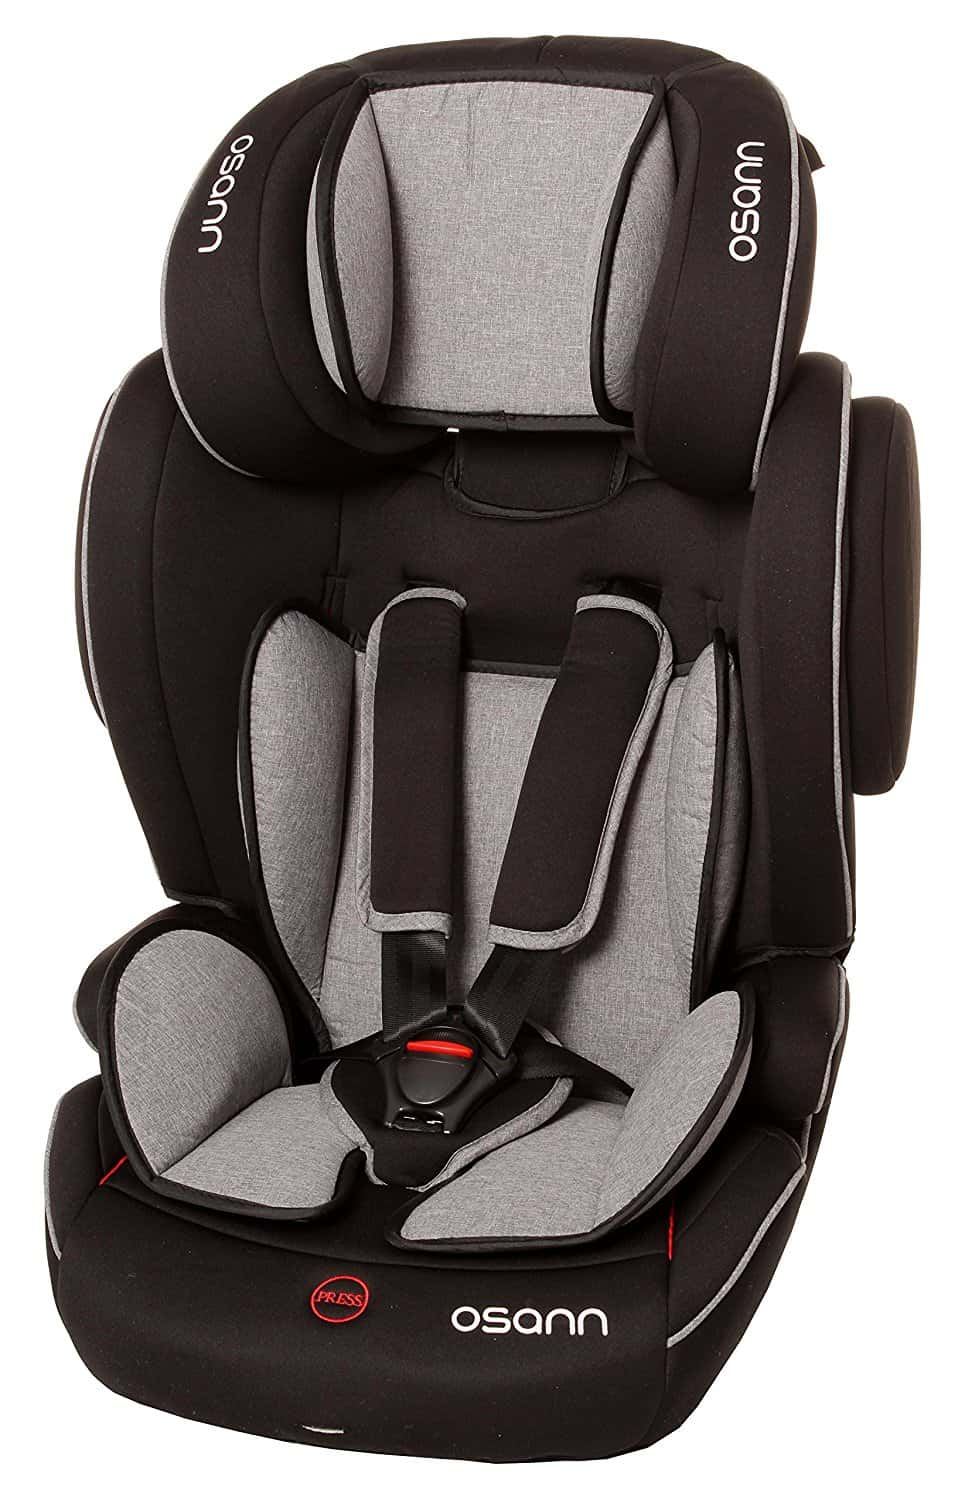 osann flux isofix si ge test en cours. Black Bedroom Furniture Sets. Home Design Ideas